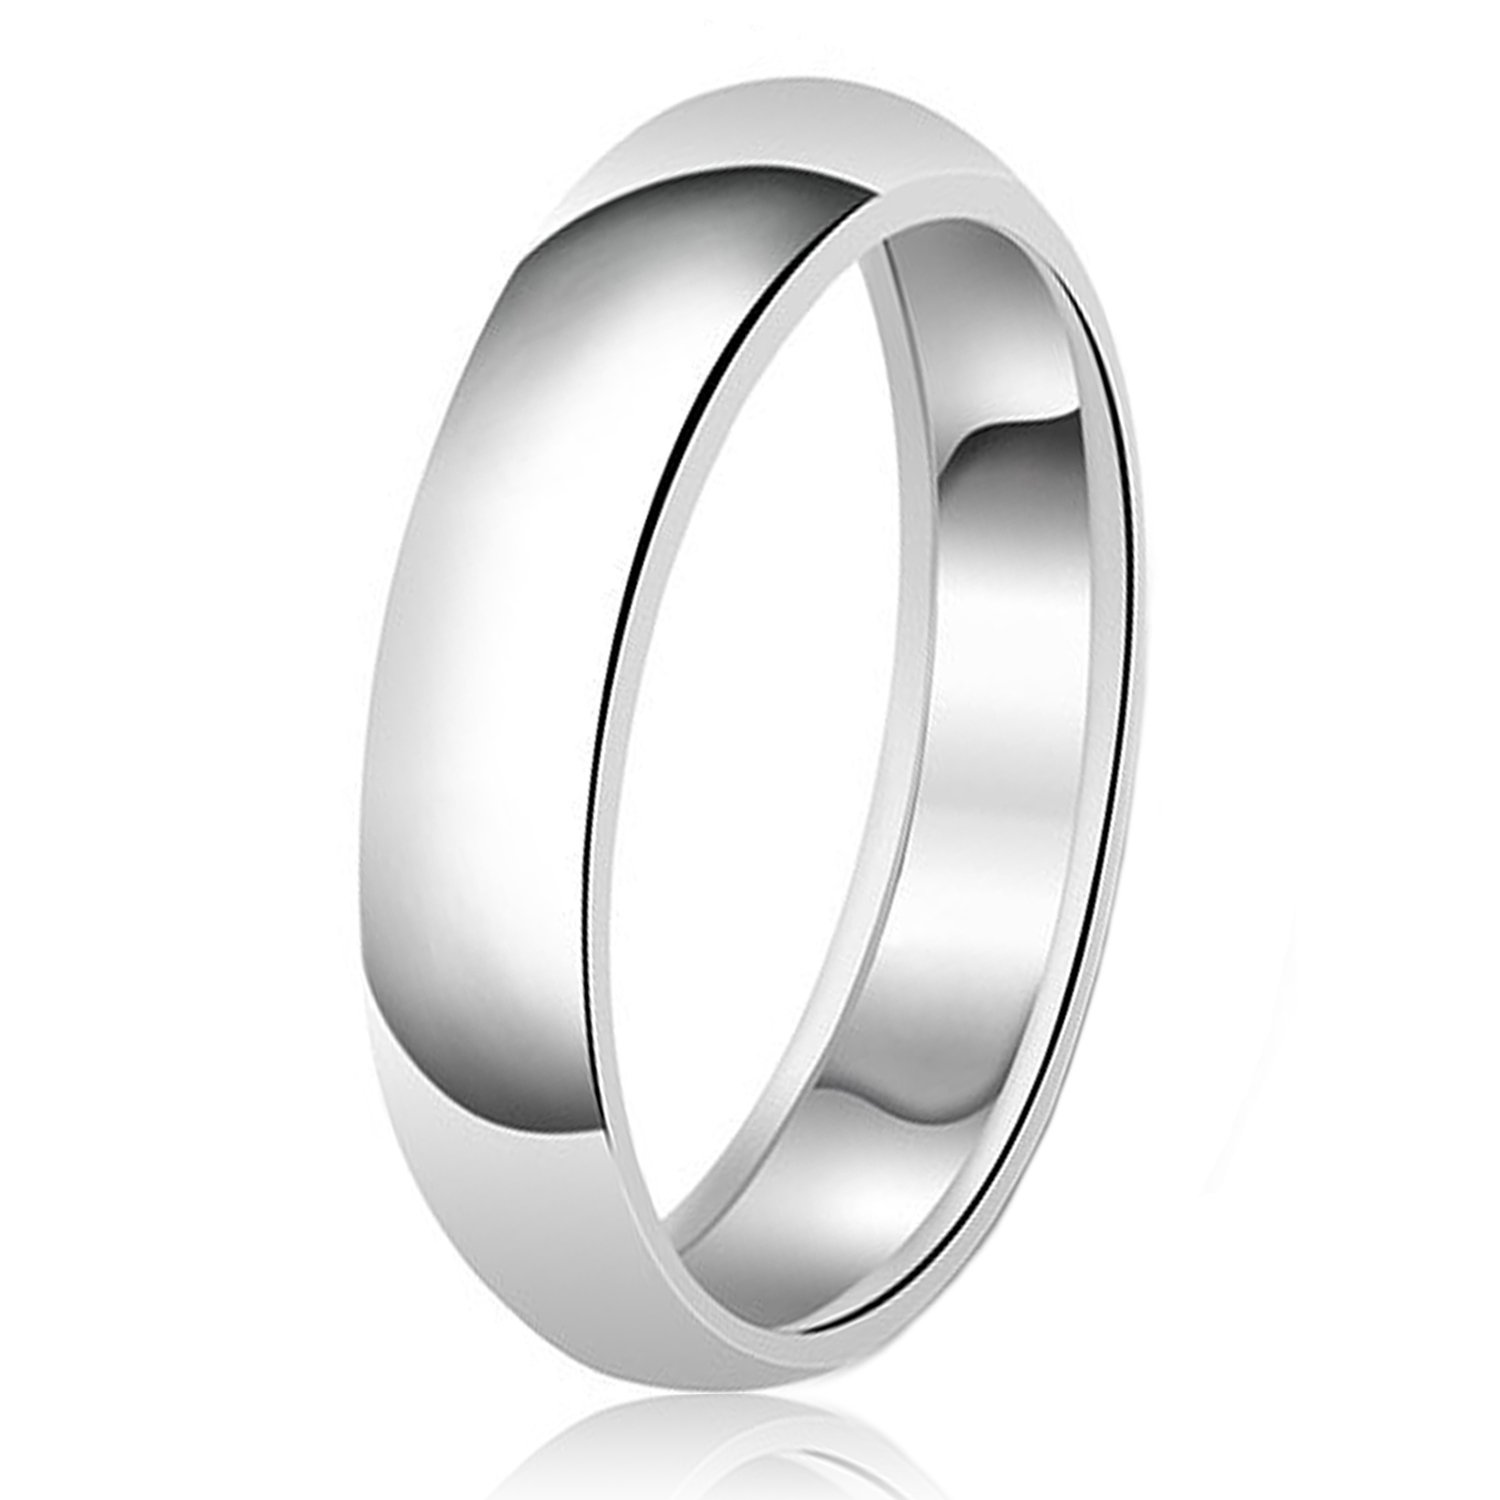 6mm Classic Sterling Silver Plain Wedding Band Ring, Size 10